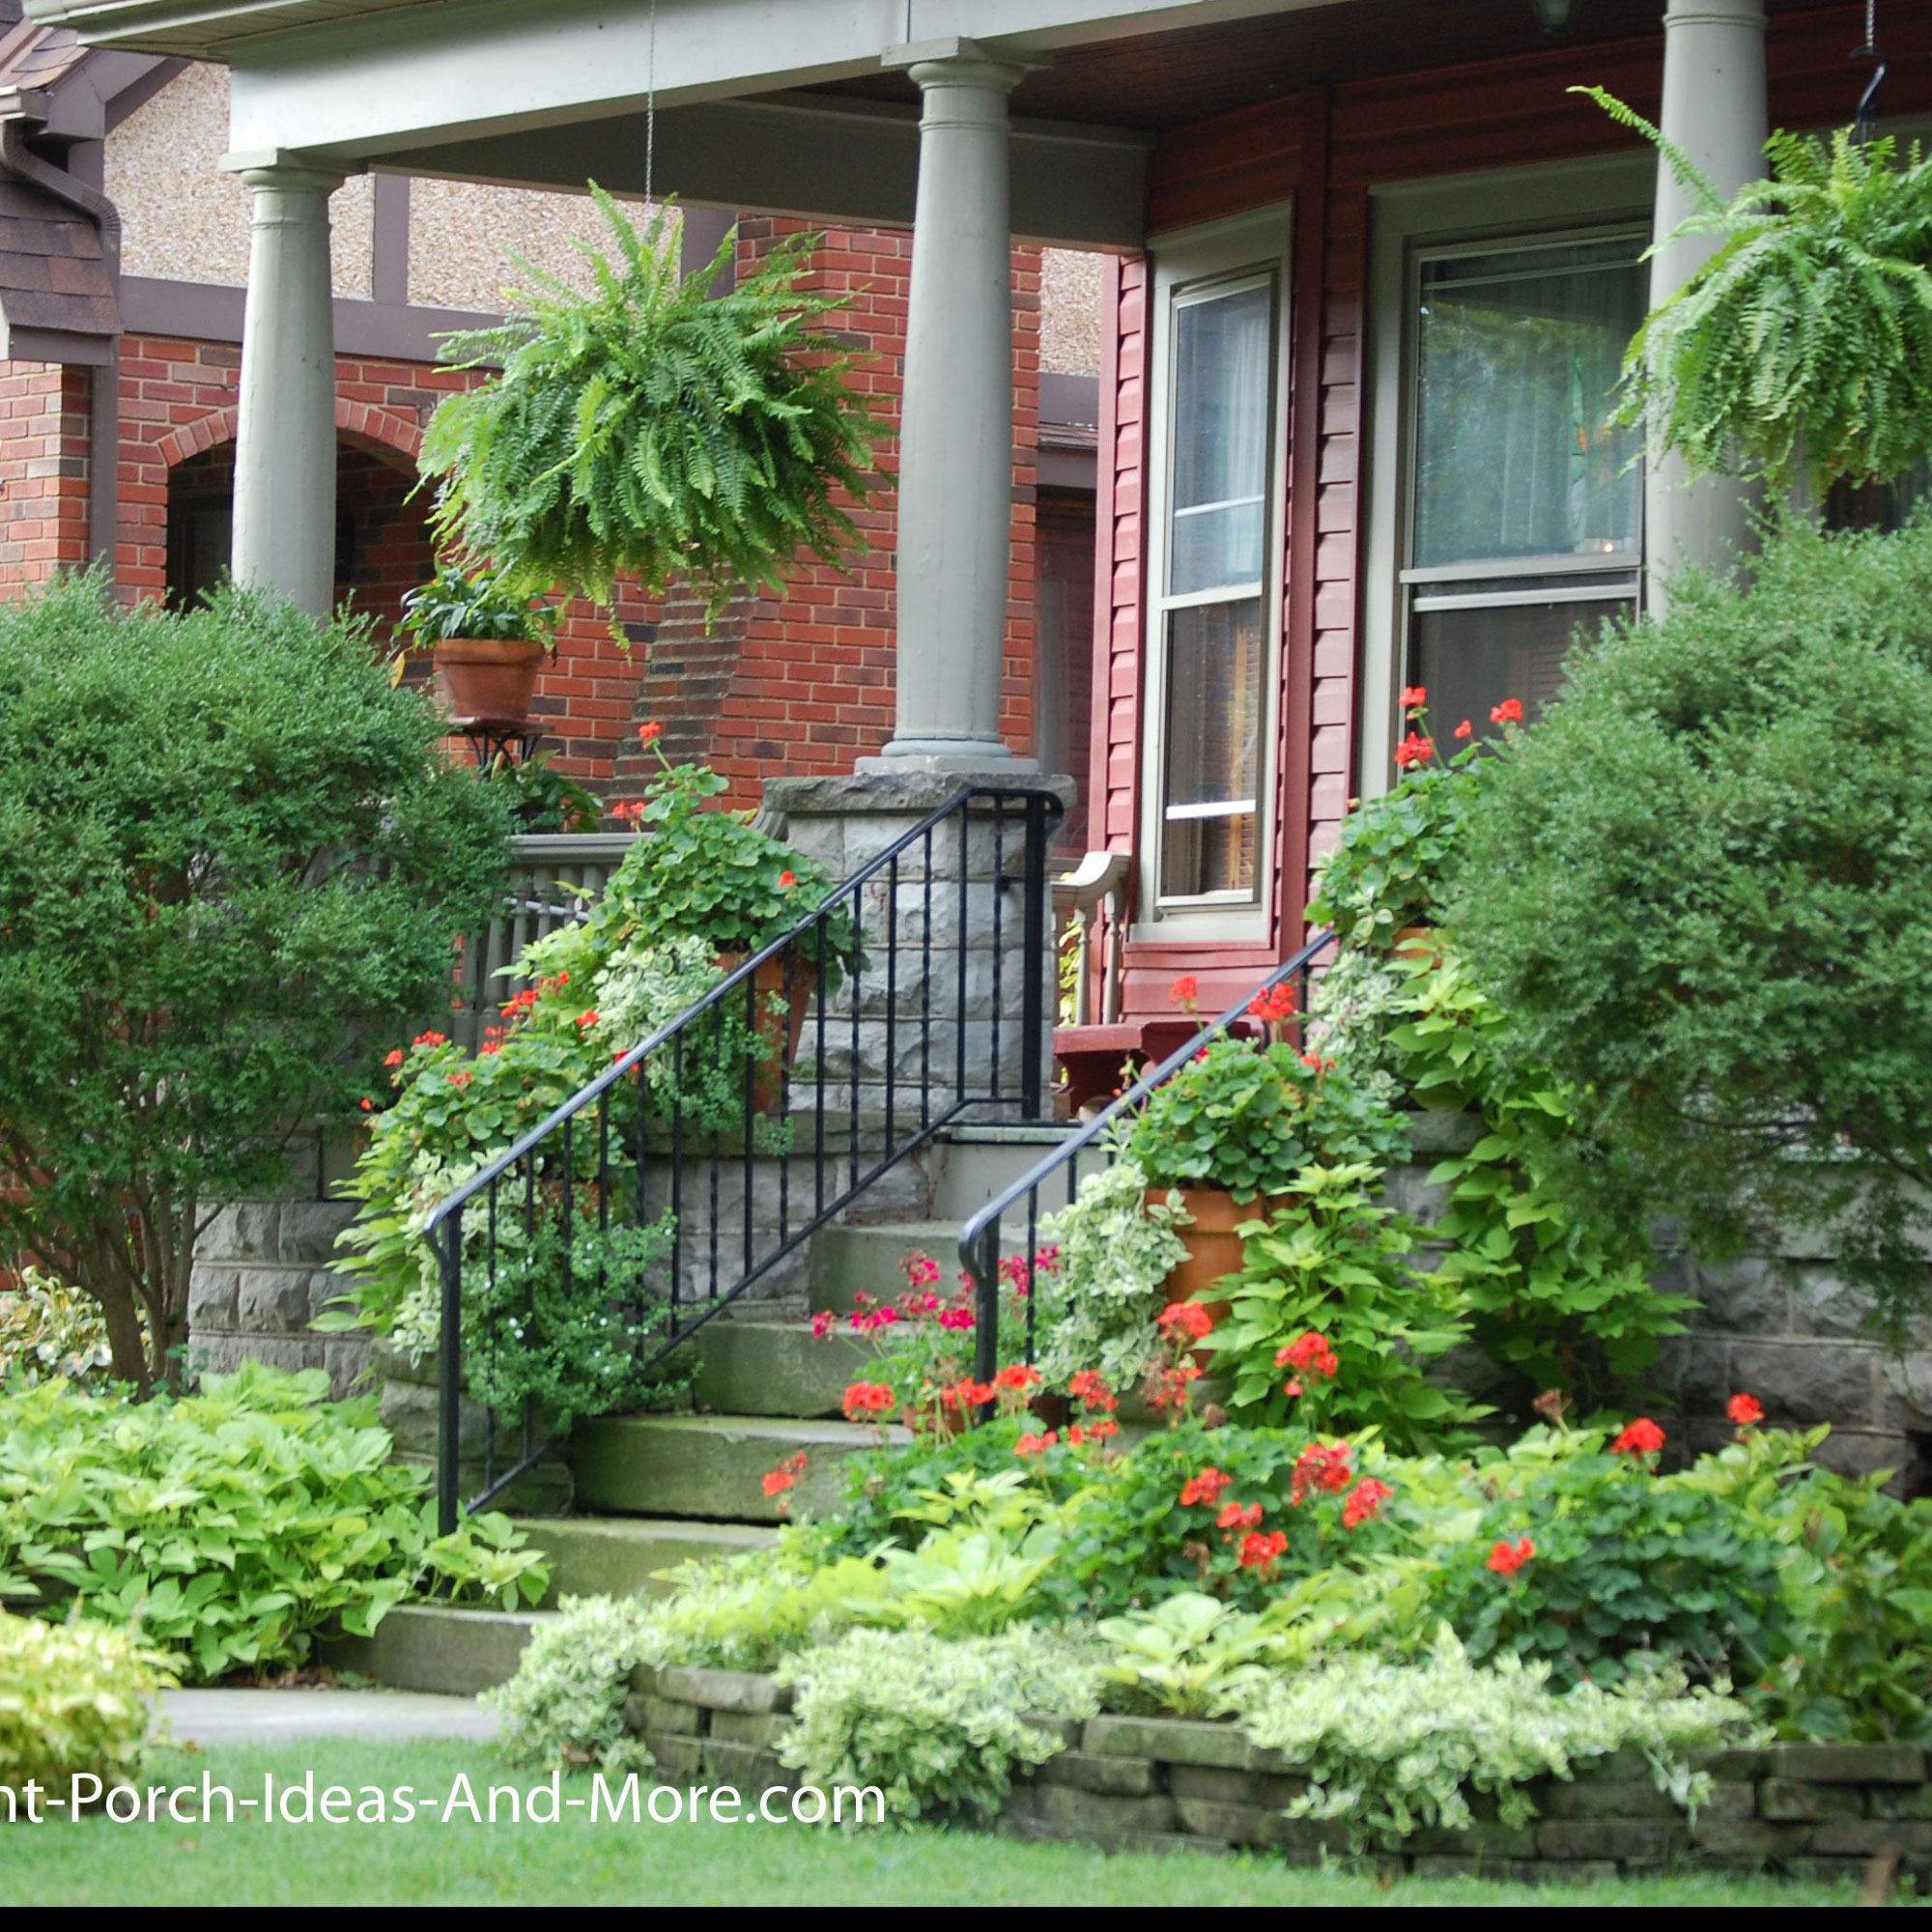 Home Garden Landscaping Ideas: Porch Landscaping Ideas For Your Front Yard And More